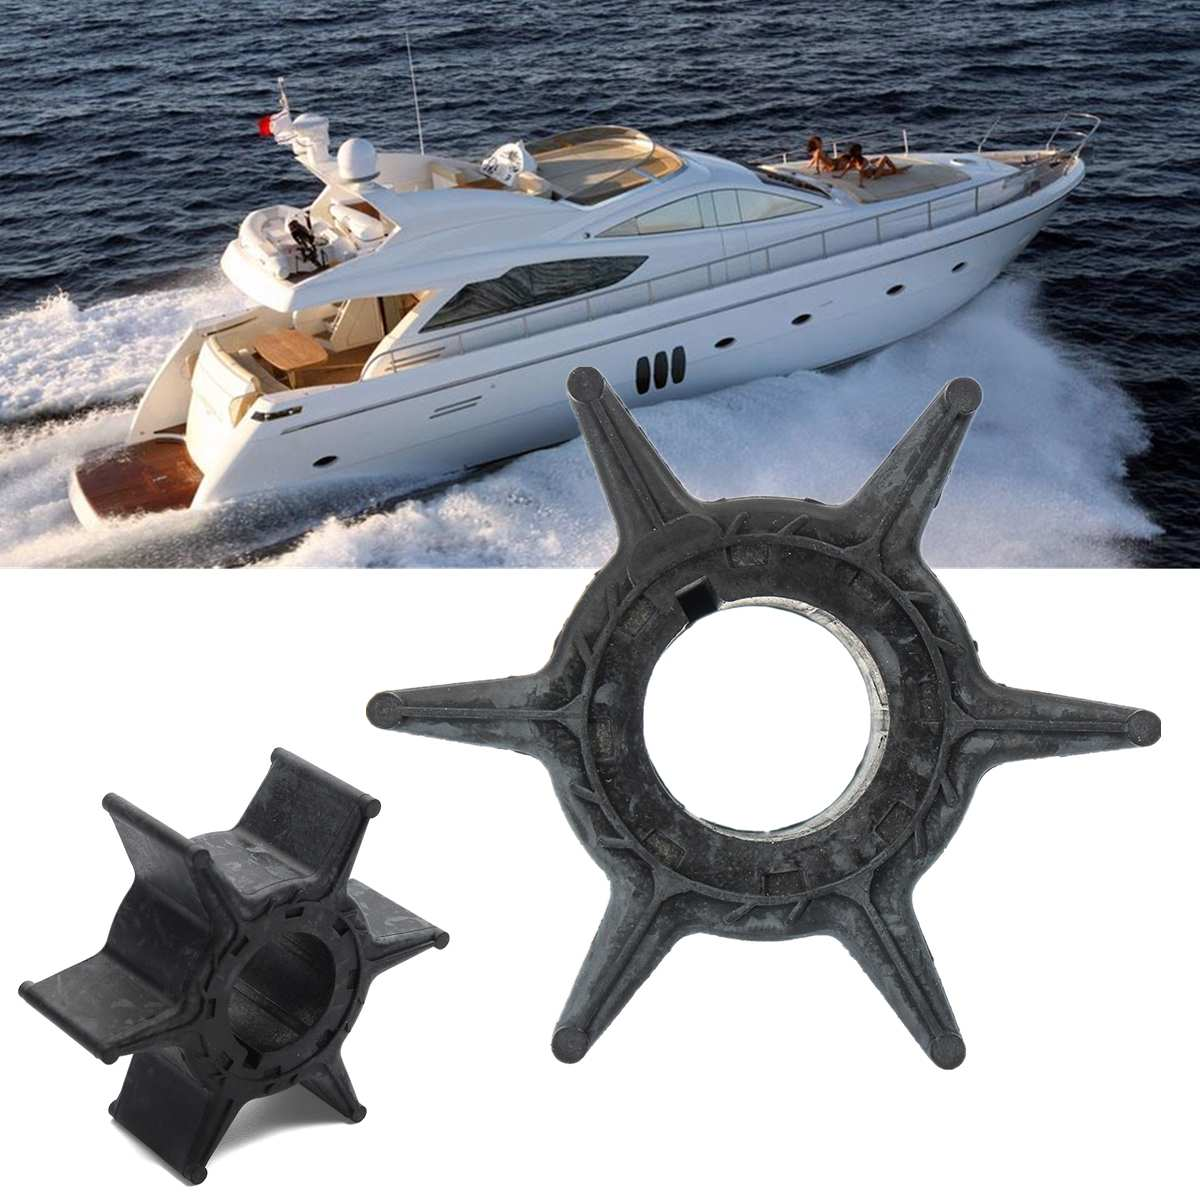 6H4-44352-01 676-44352-01 Water Pump Impeller For Yamaha Outboard (25/30/40/50HP) Sierra 18-3068 2/4 Stroke 6 Blades Rubber